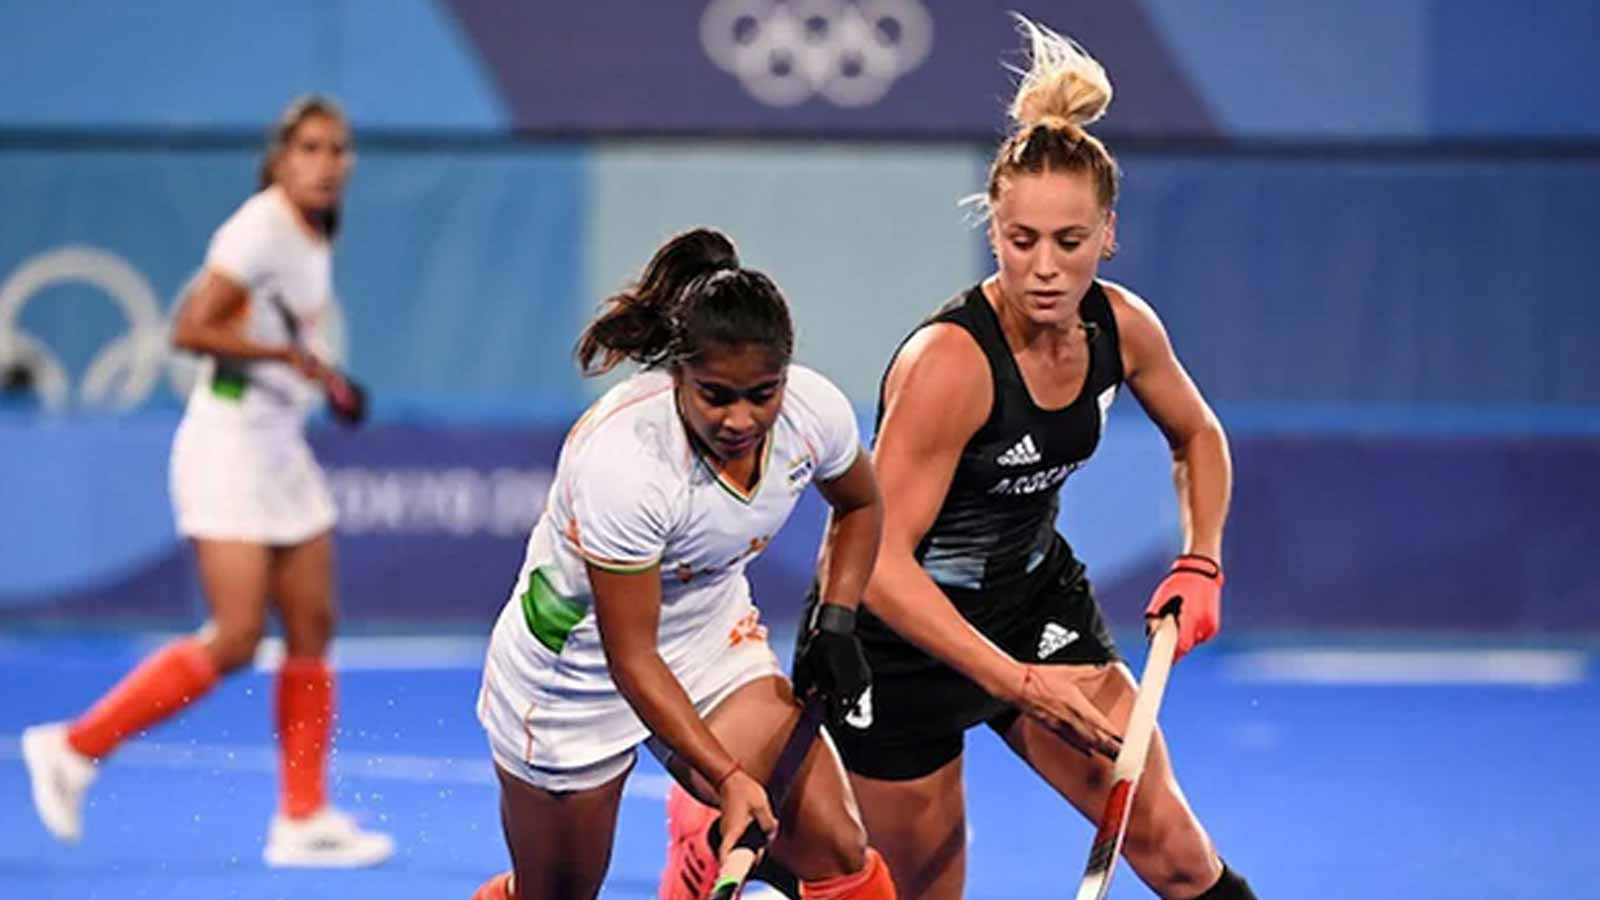 tokyo-olympics-india-lose-in-womens-hockey-semis-to-play-for-bronze